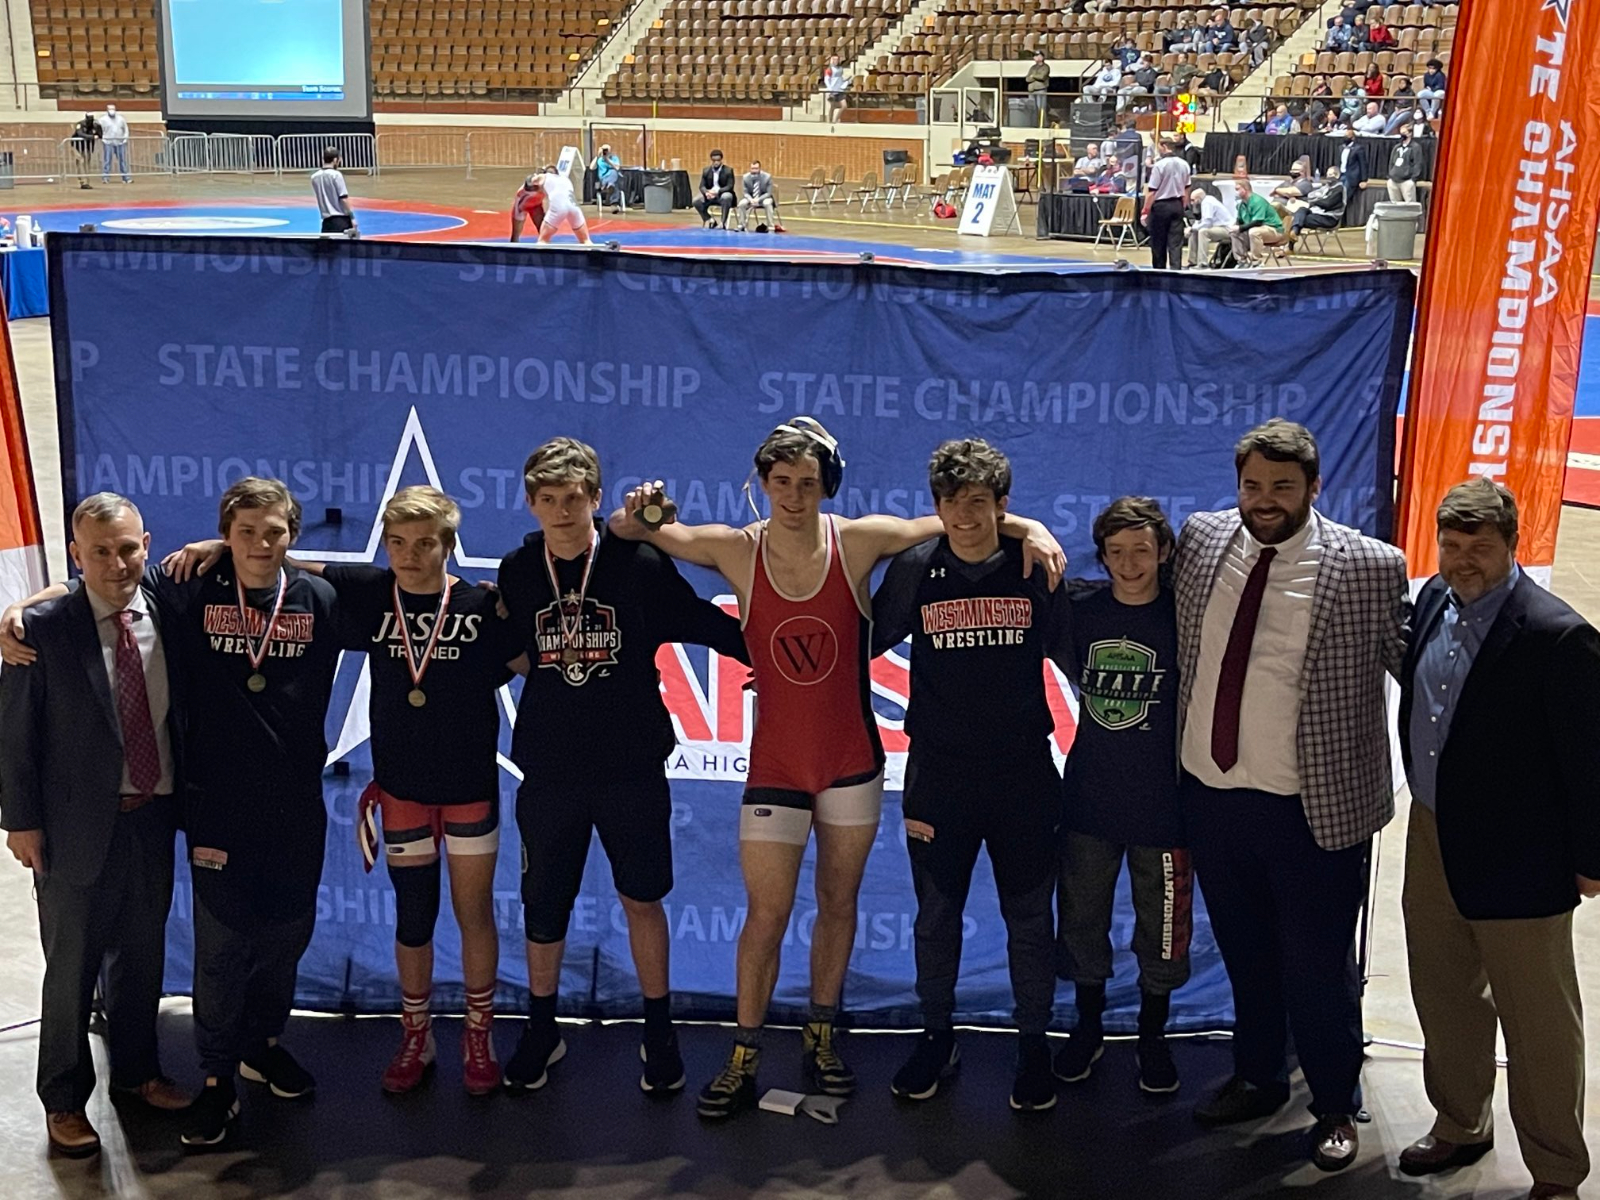 Wrestling finishes 4th in the State with 3 Individual Champions!